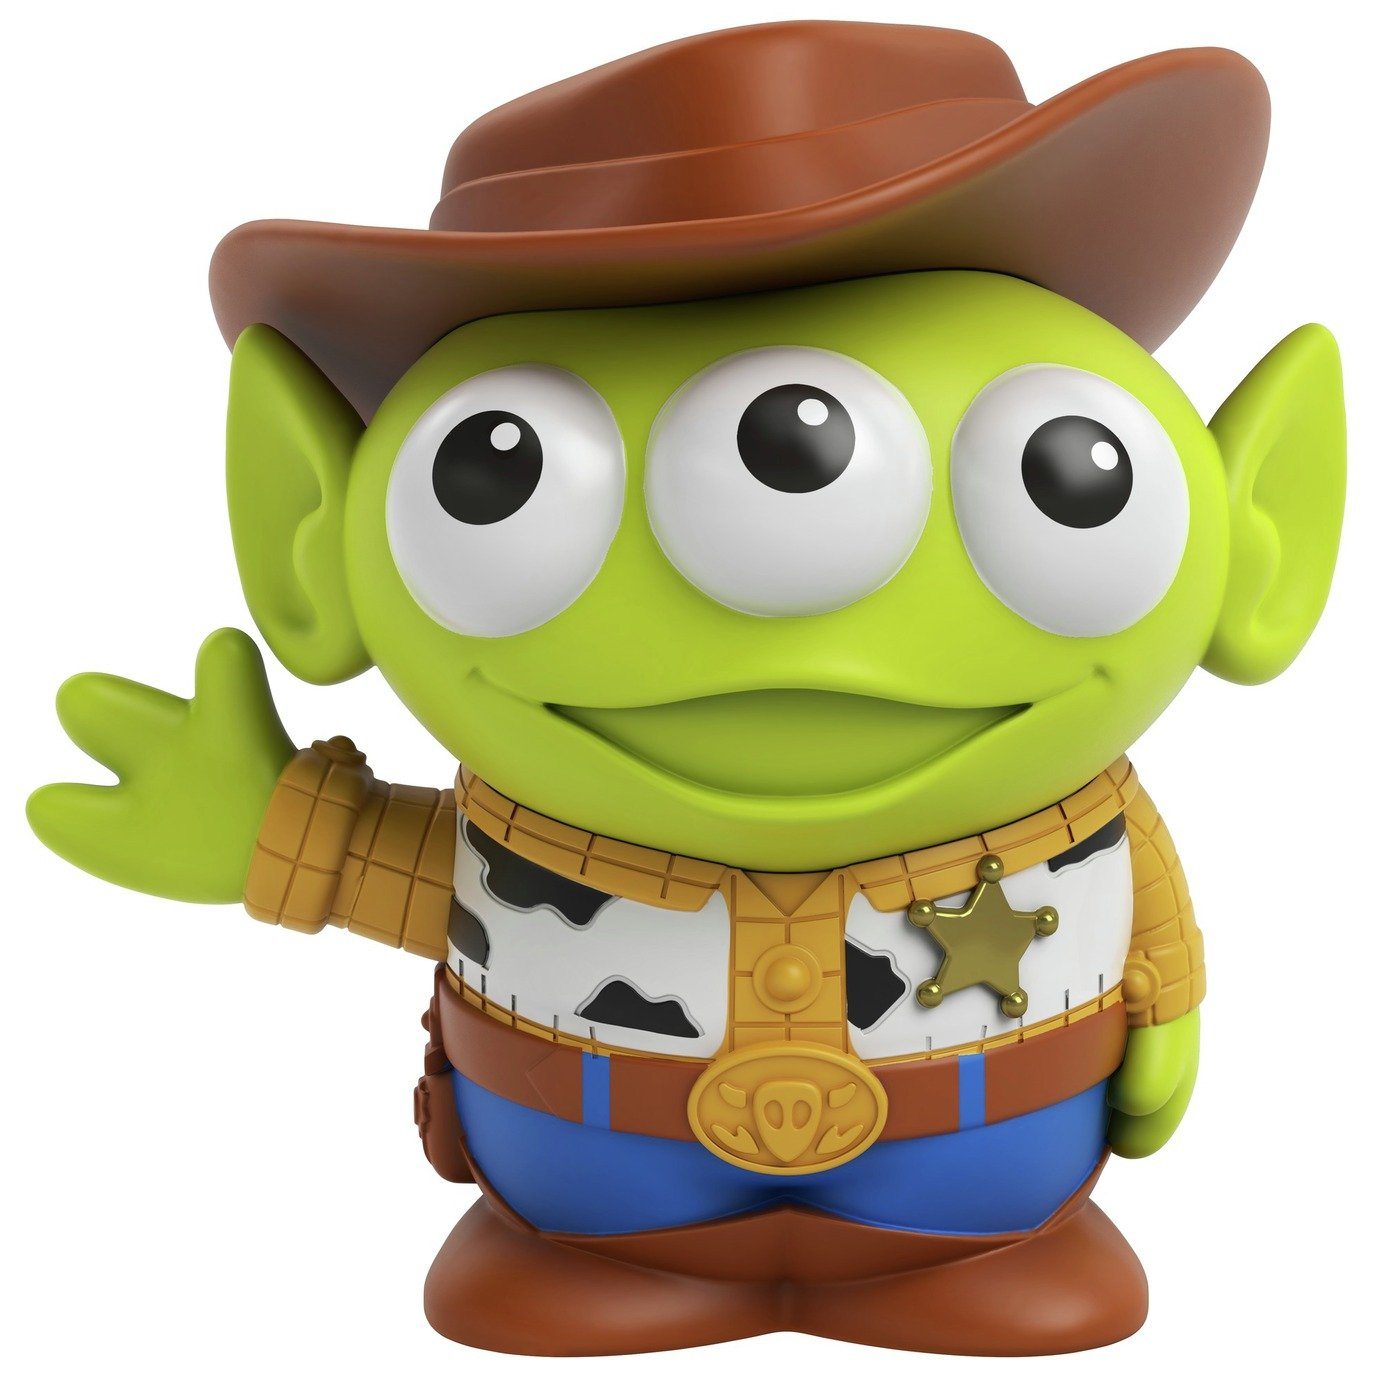 Disney Pixar Alien Dress-Up - Woody Figure